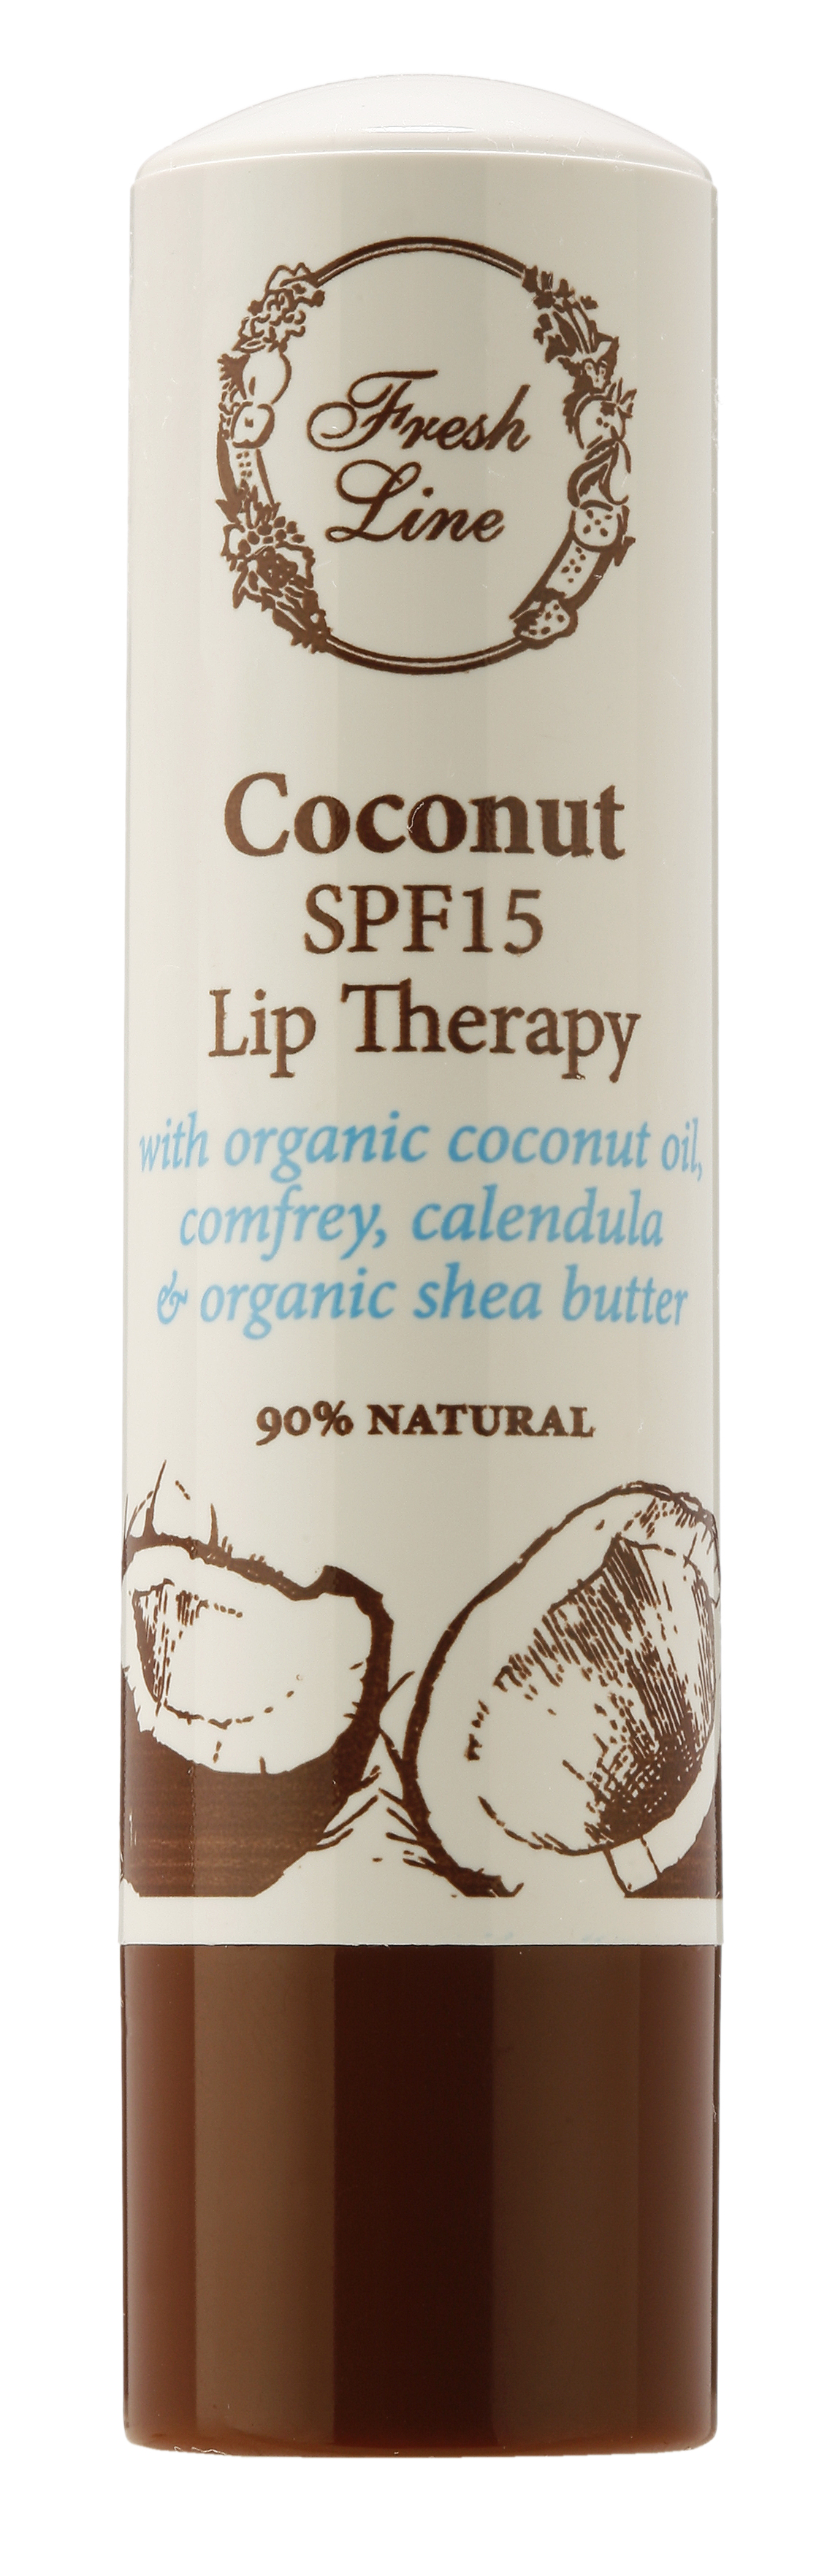 Coconut SPF15 Lip Therapy